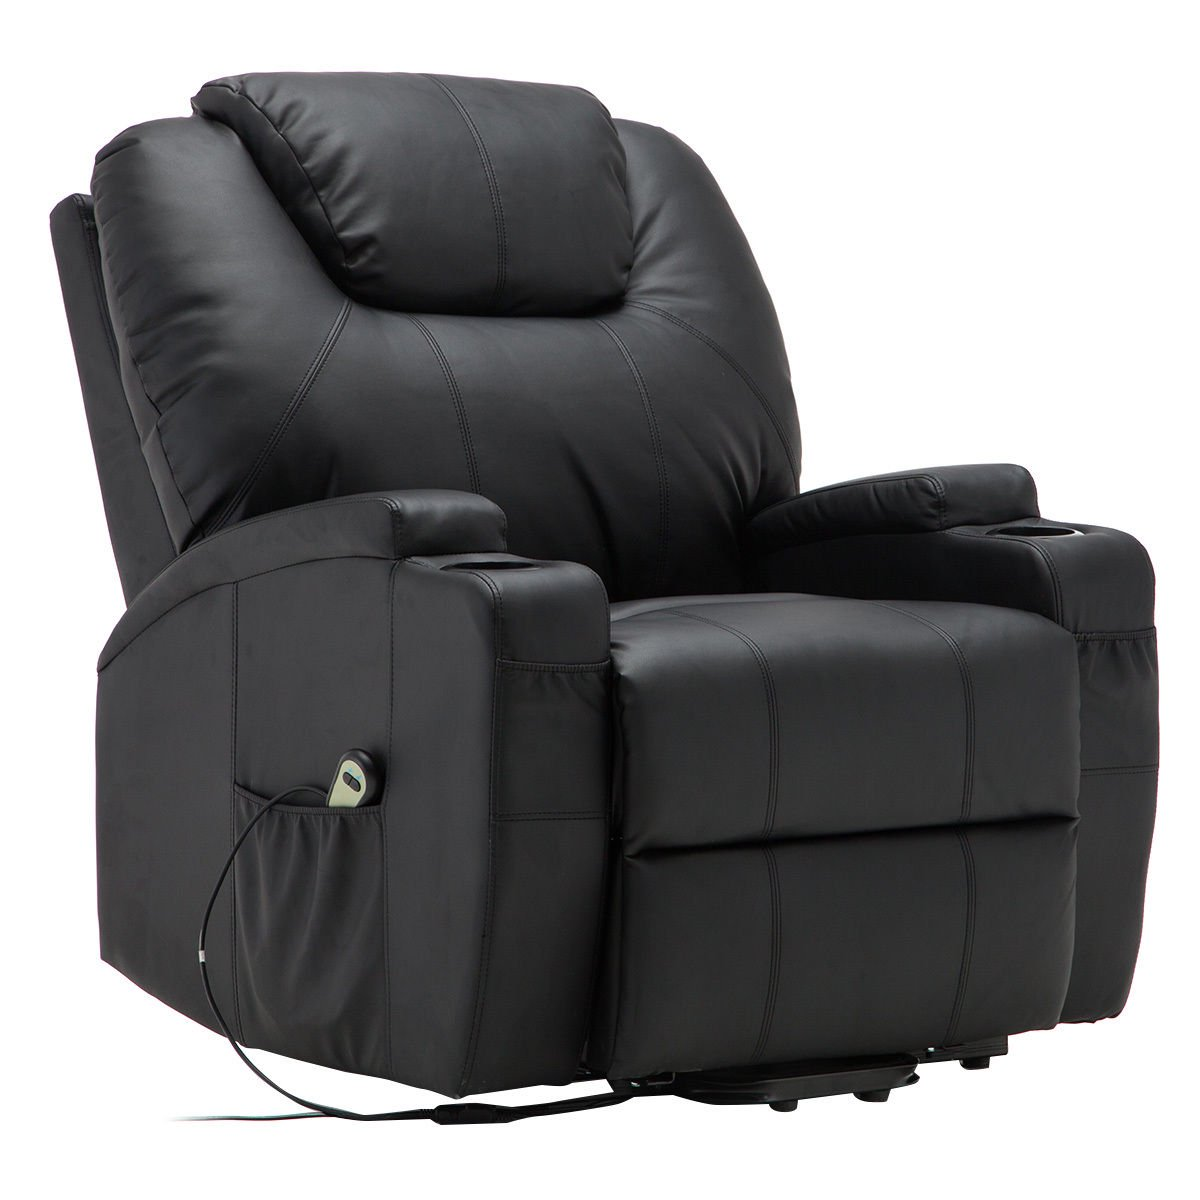 Costway Electric Lift Power Recliner Chair Heated Massage Sofa Lounge w/ Remote Control  sc 1 st  Walmart : motorized recliner chairs - islam-shia.org